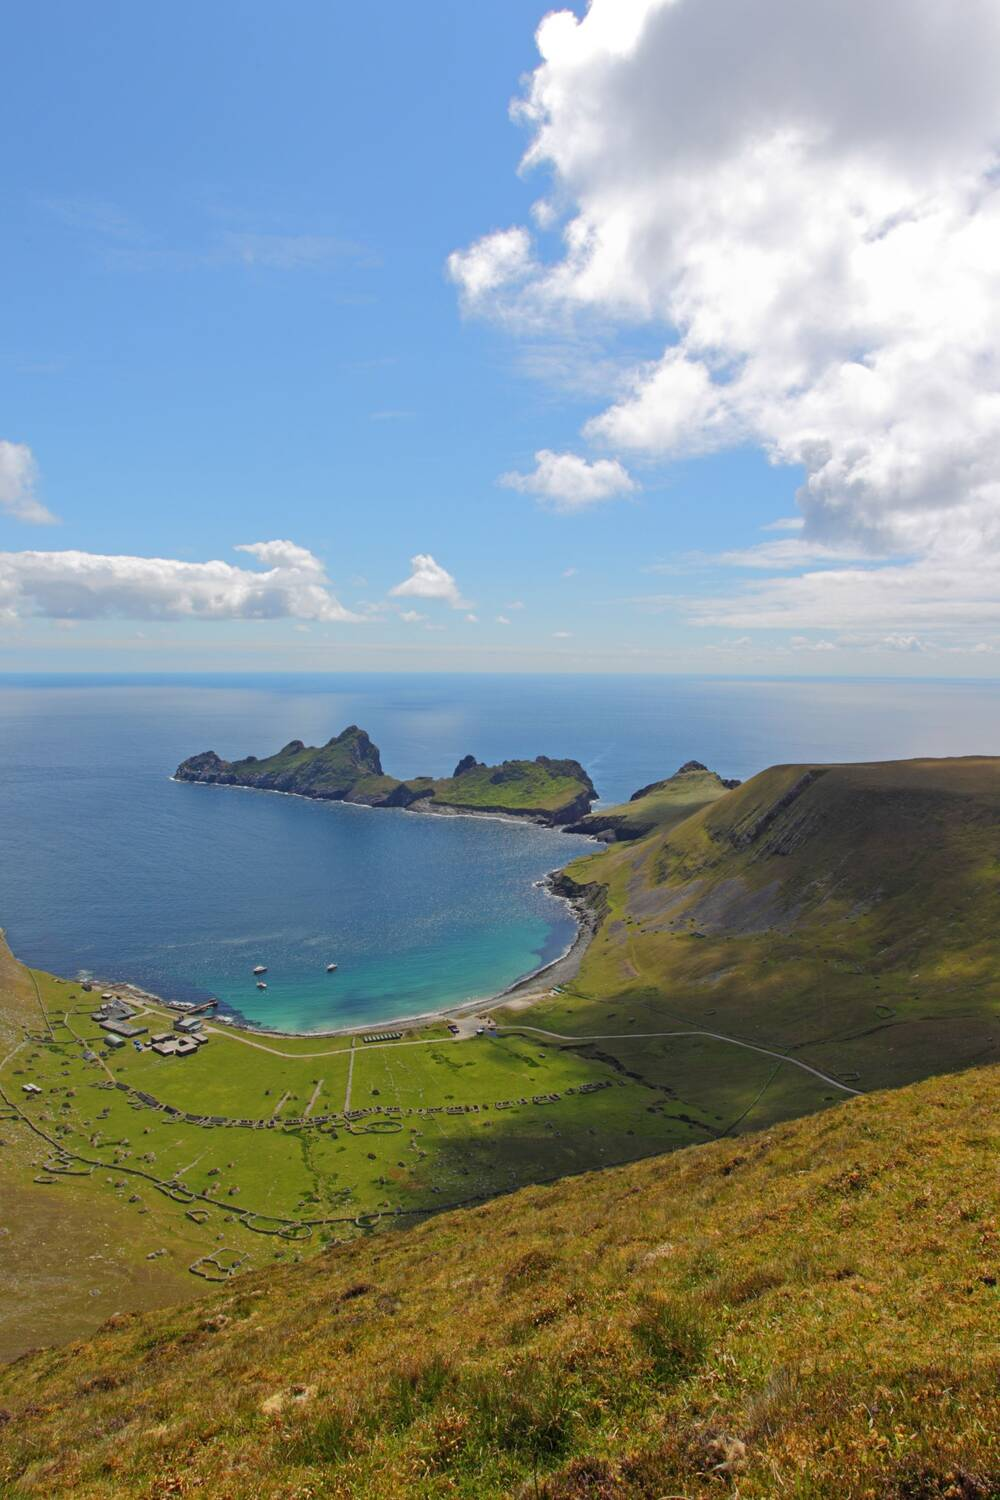 Looking down on Village Bay in St Kilda, seen from the steep hillside on Hirta.